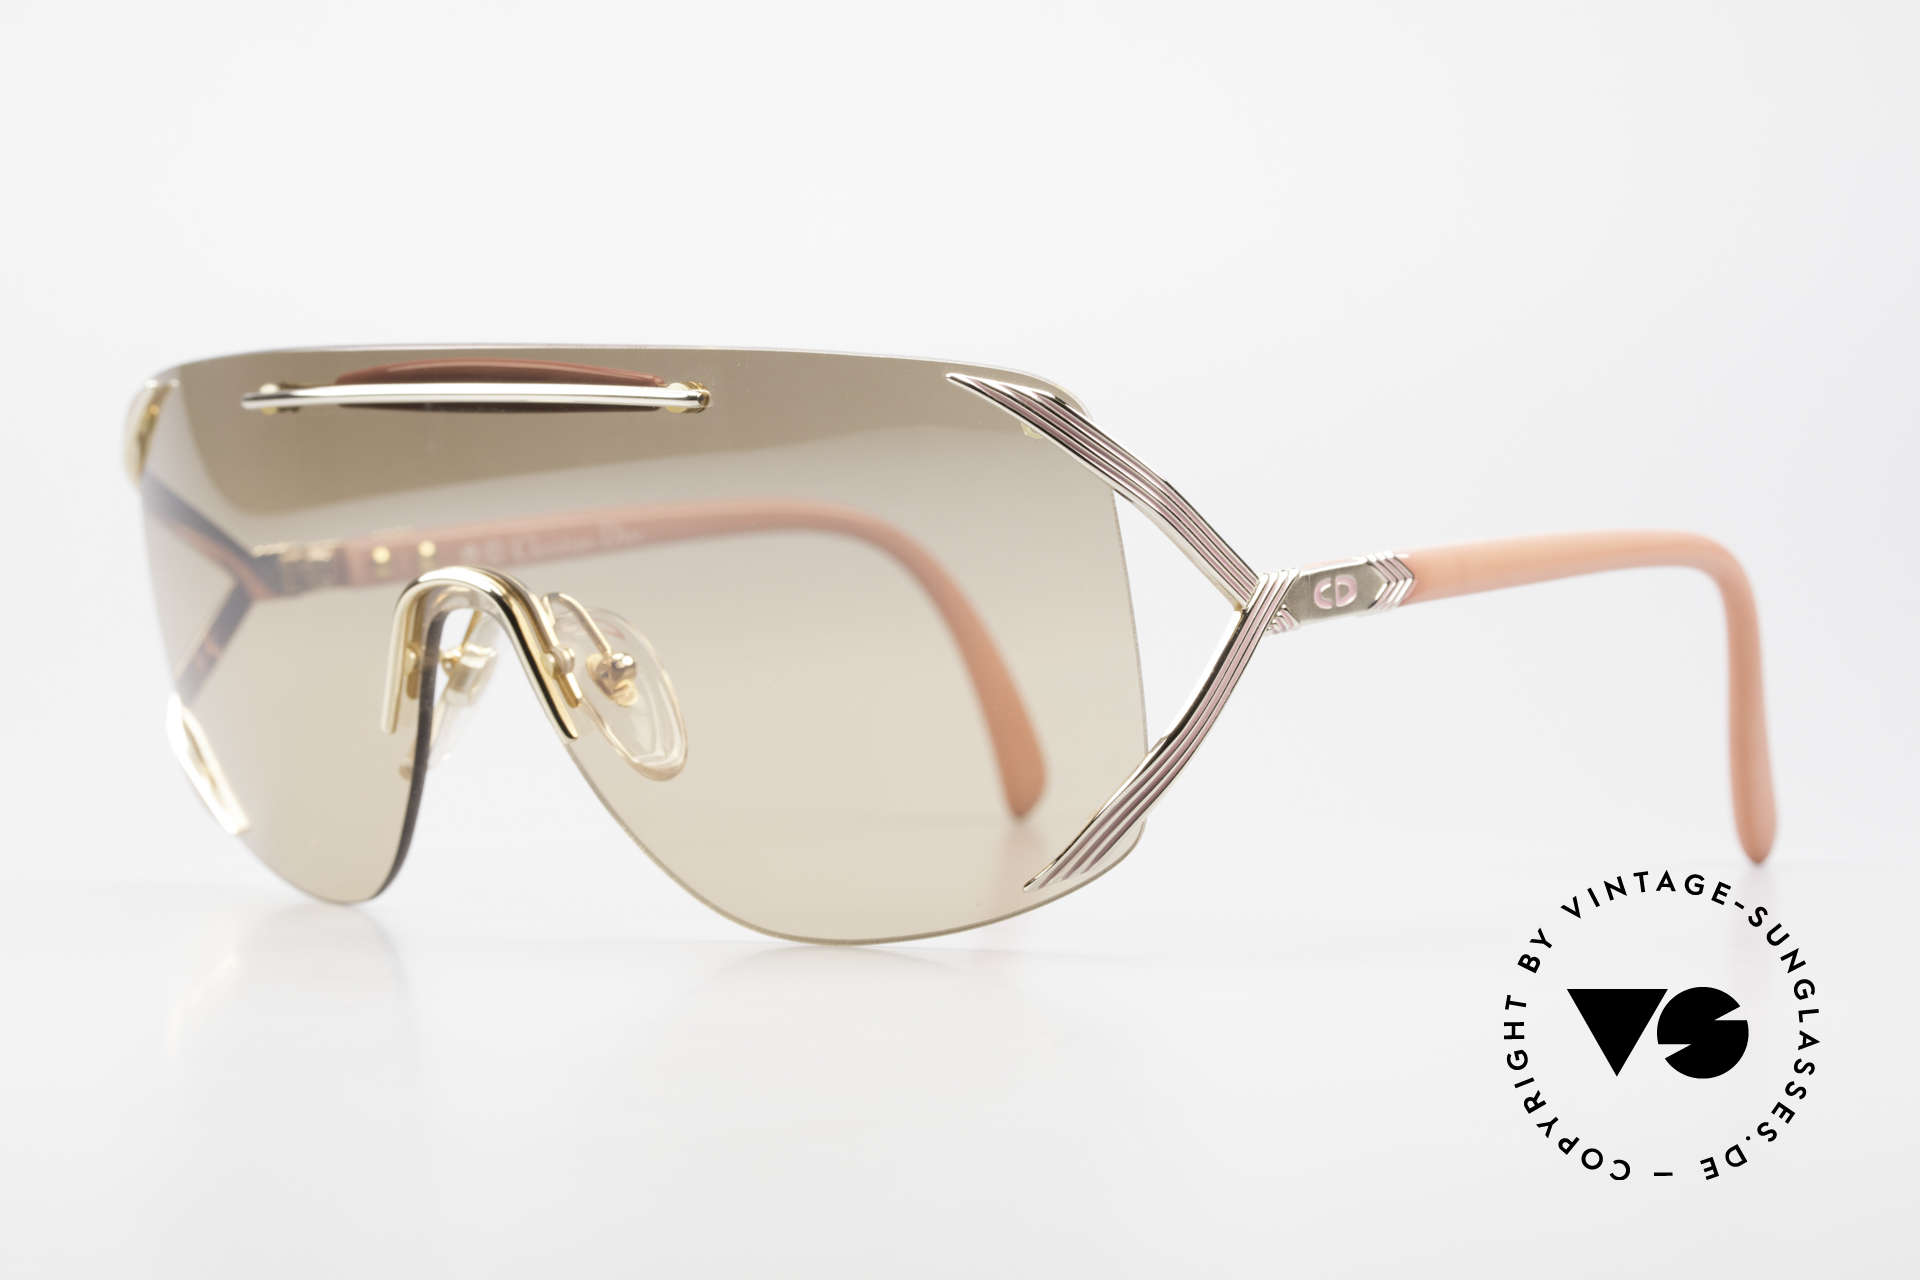 Christian Dior 2434 Light Pink Mirrored Shades 80s, very noble thanks to the light PINK mirrored lens!, Made for Women